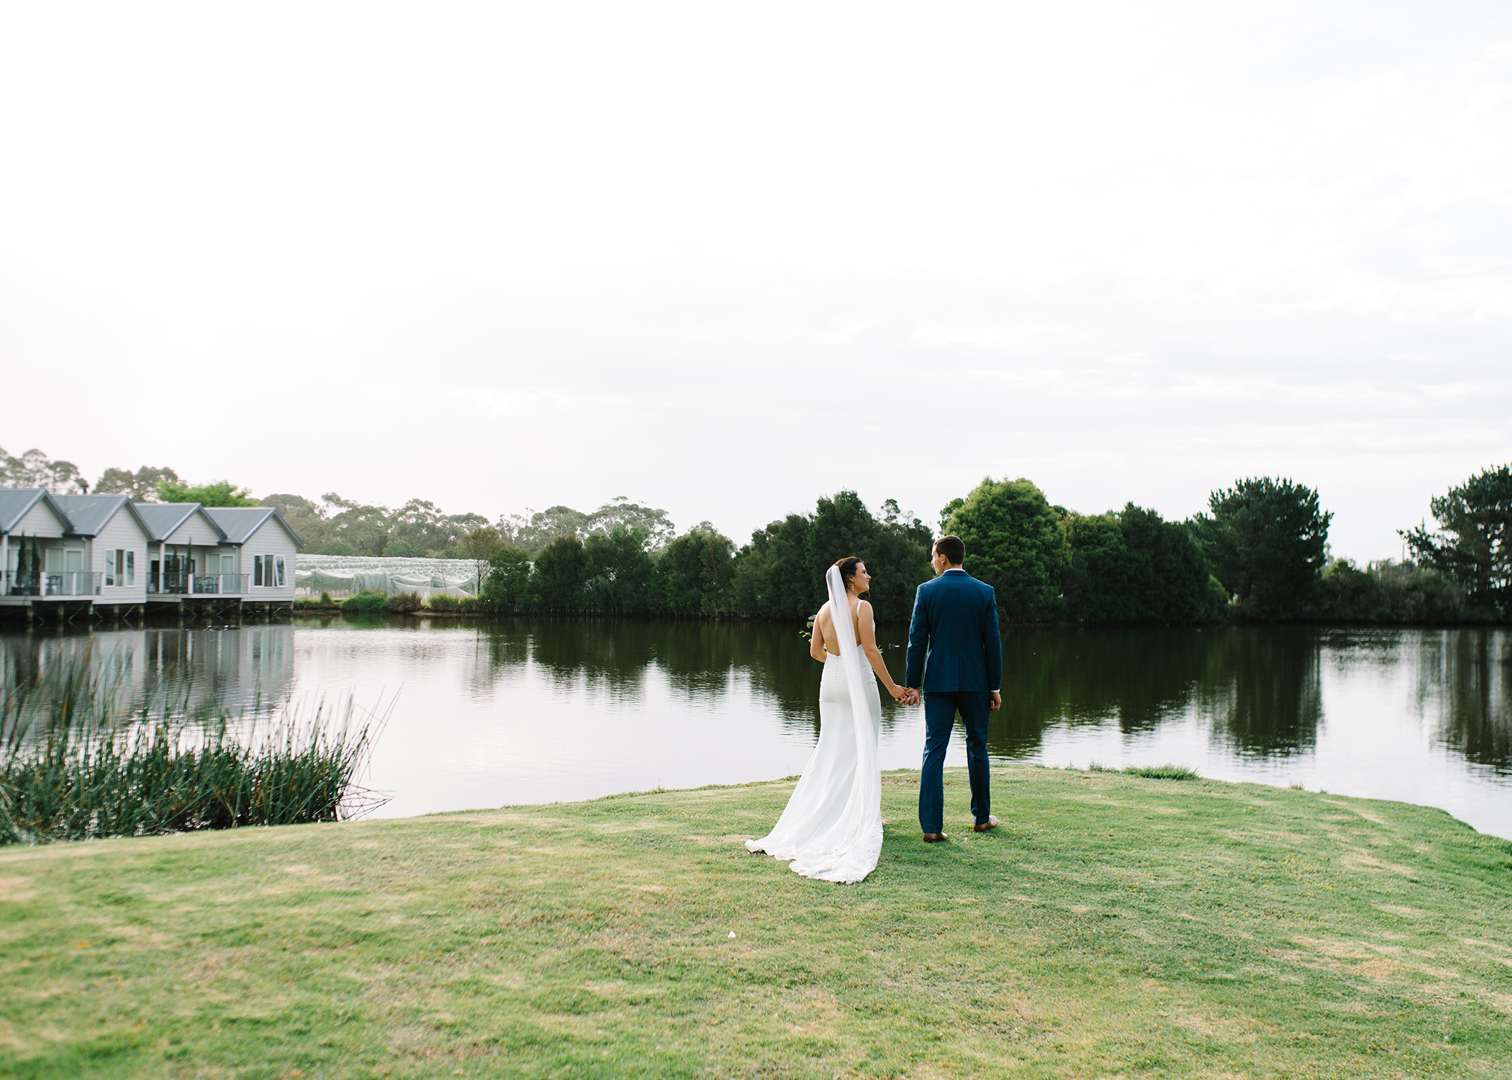 Wedding at Stillwater at Crittenden photography by Michelle Pragt